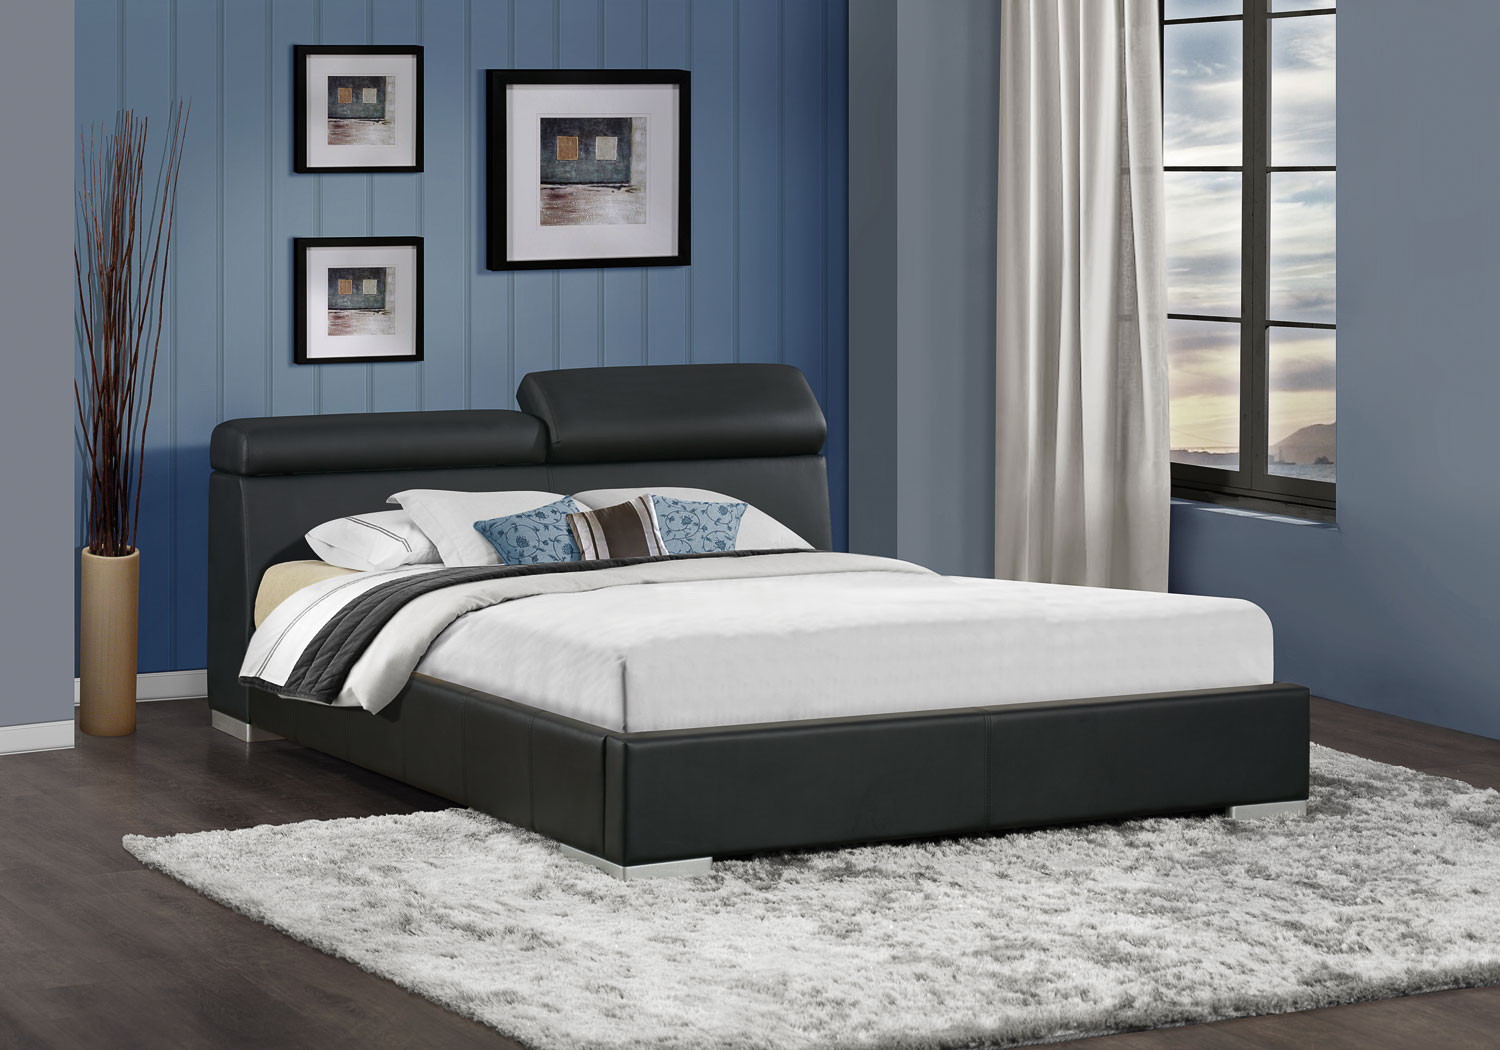 Homelegance Myall Upholstered Bed